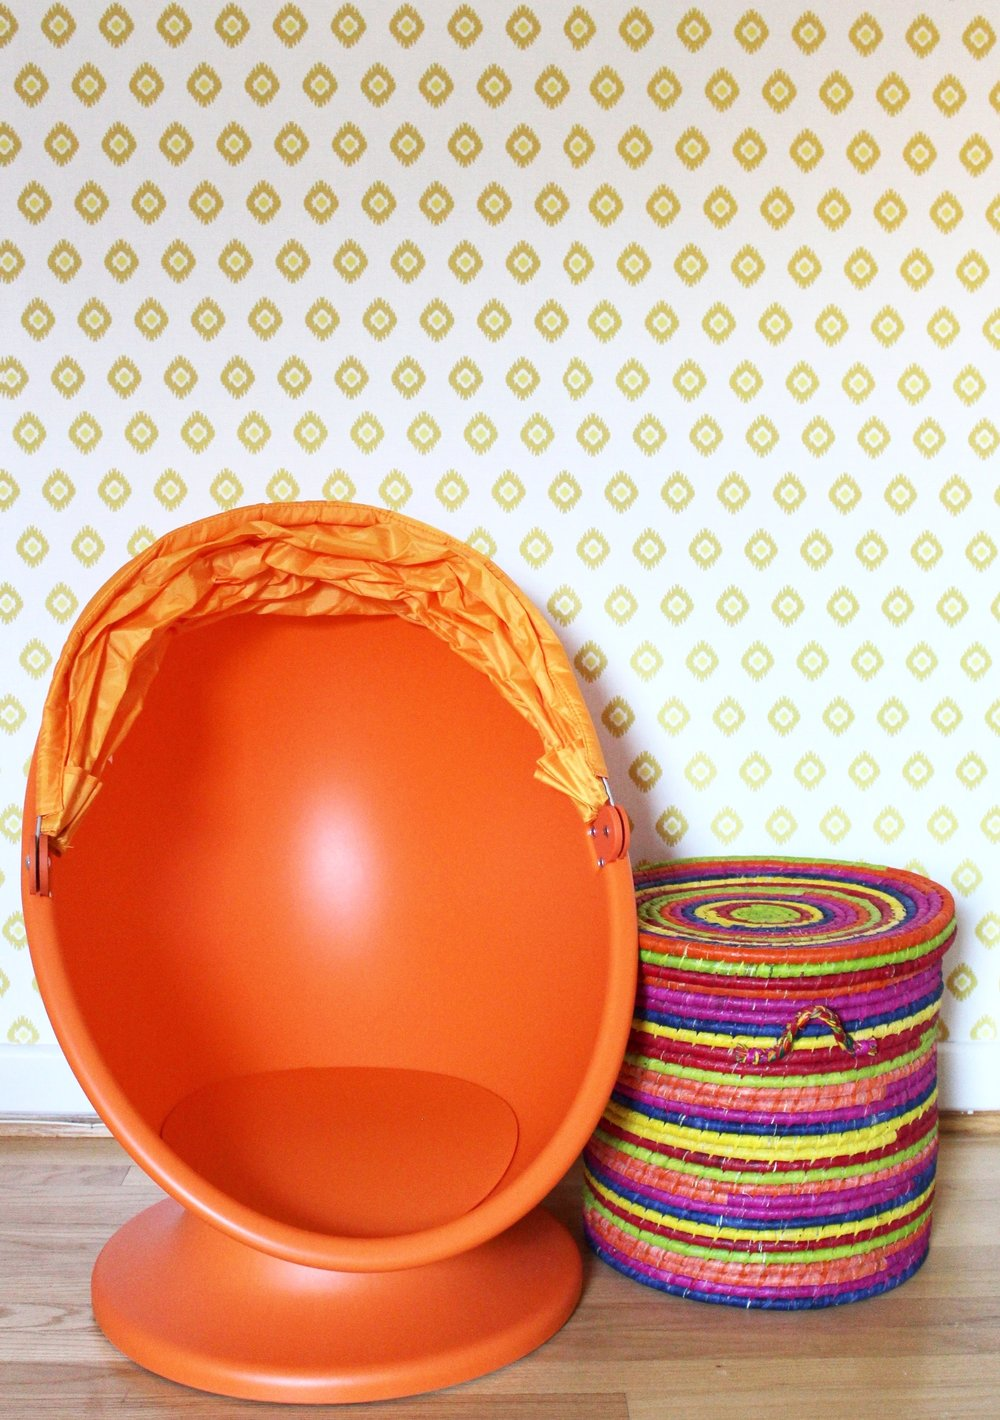 ORC Rainbow Room Egg Chair.jpg